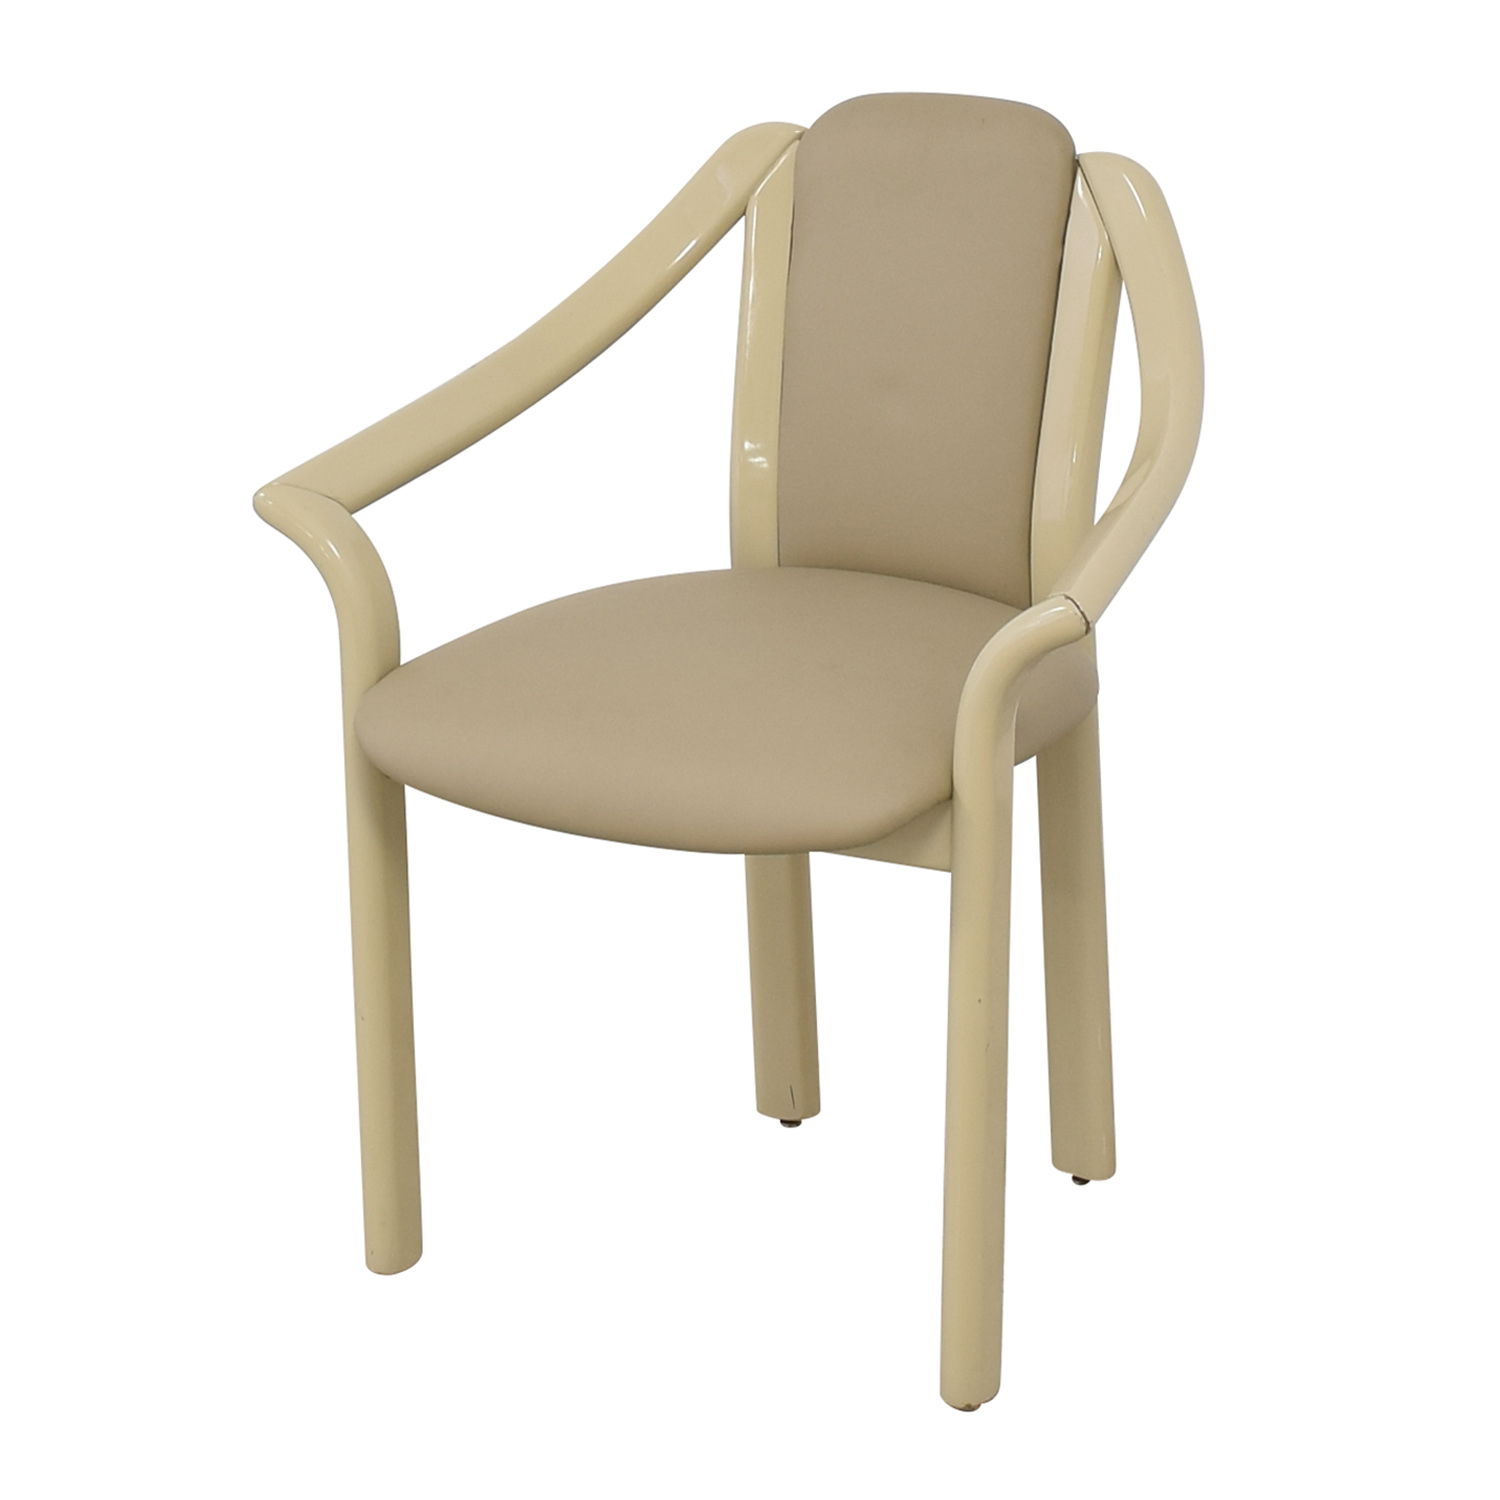 Vintage Dining Chairs second hand